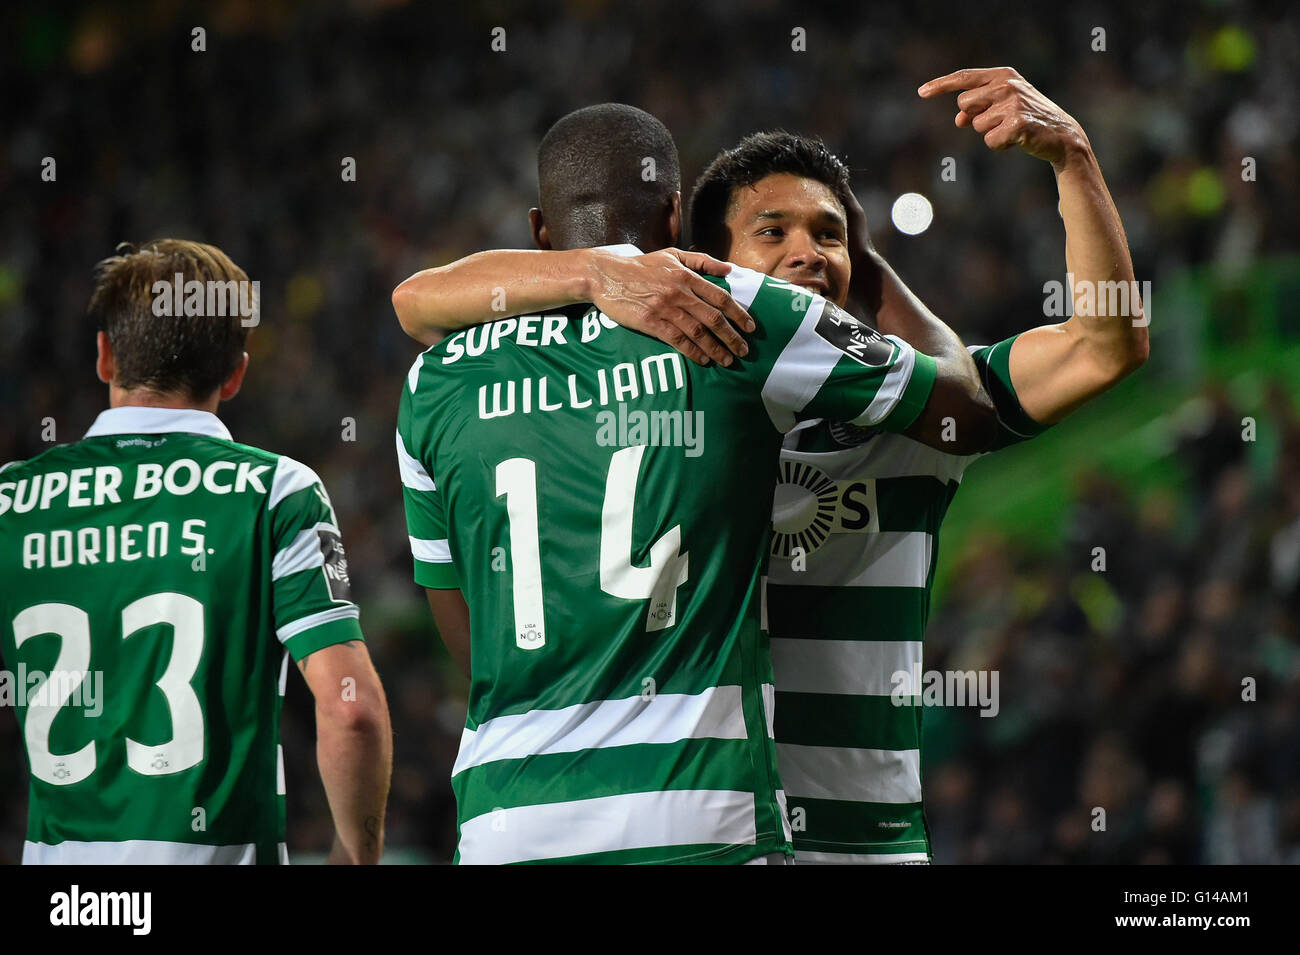 Portugal, Lisbon,May 07,2016 - SPORTING-V.SETÚBAL  - Teo Gutierrez, Sporting player, celebrates his goal, during - Stock Image